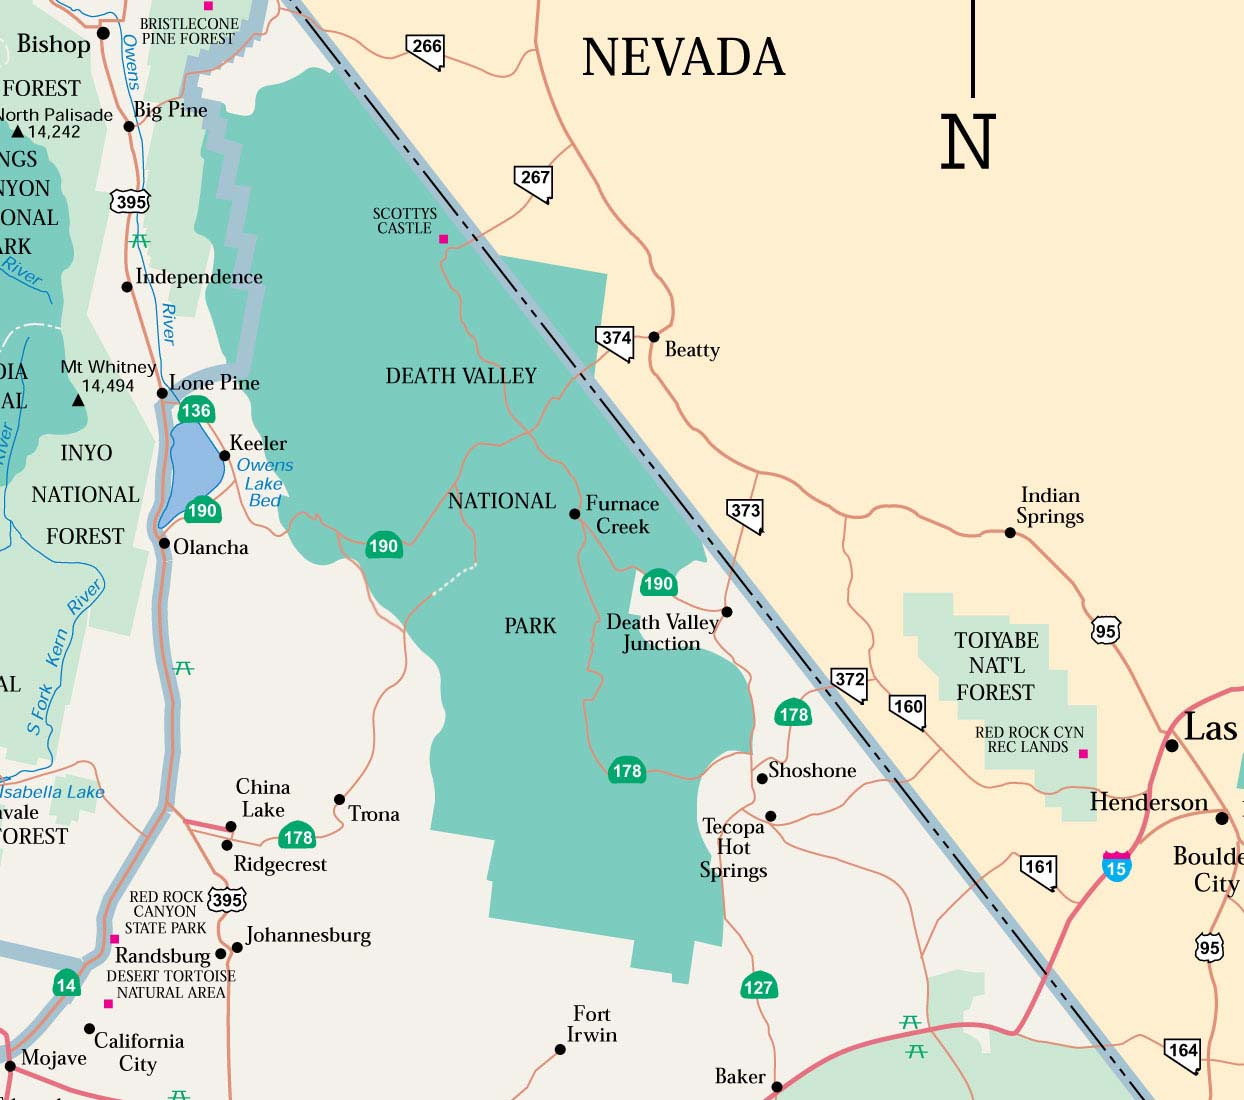 Desert Population Area Km Million Acres Largest City Palm Us Map California And Nevada